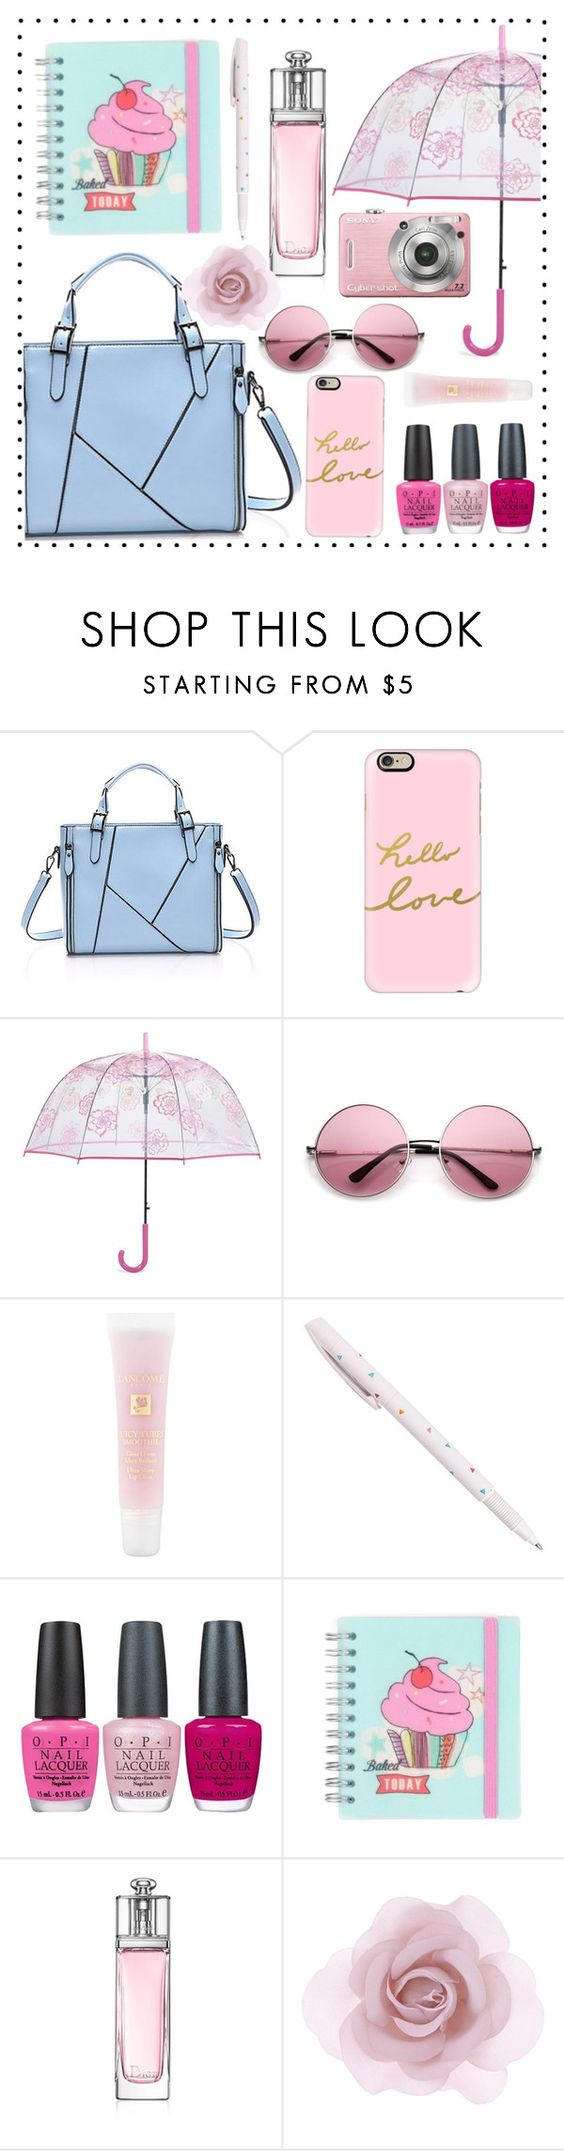 """tote bag"" by anchilly23 ❤ liked on Polyvore featuring Casetify, Vera Bradley, Lancôme, OPI, Christian Dior, Accessorize, women's clothing, women's fashion, women and female"